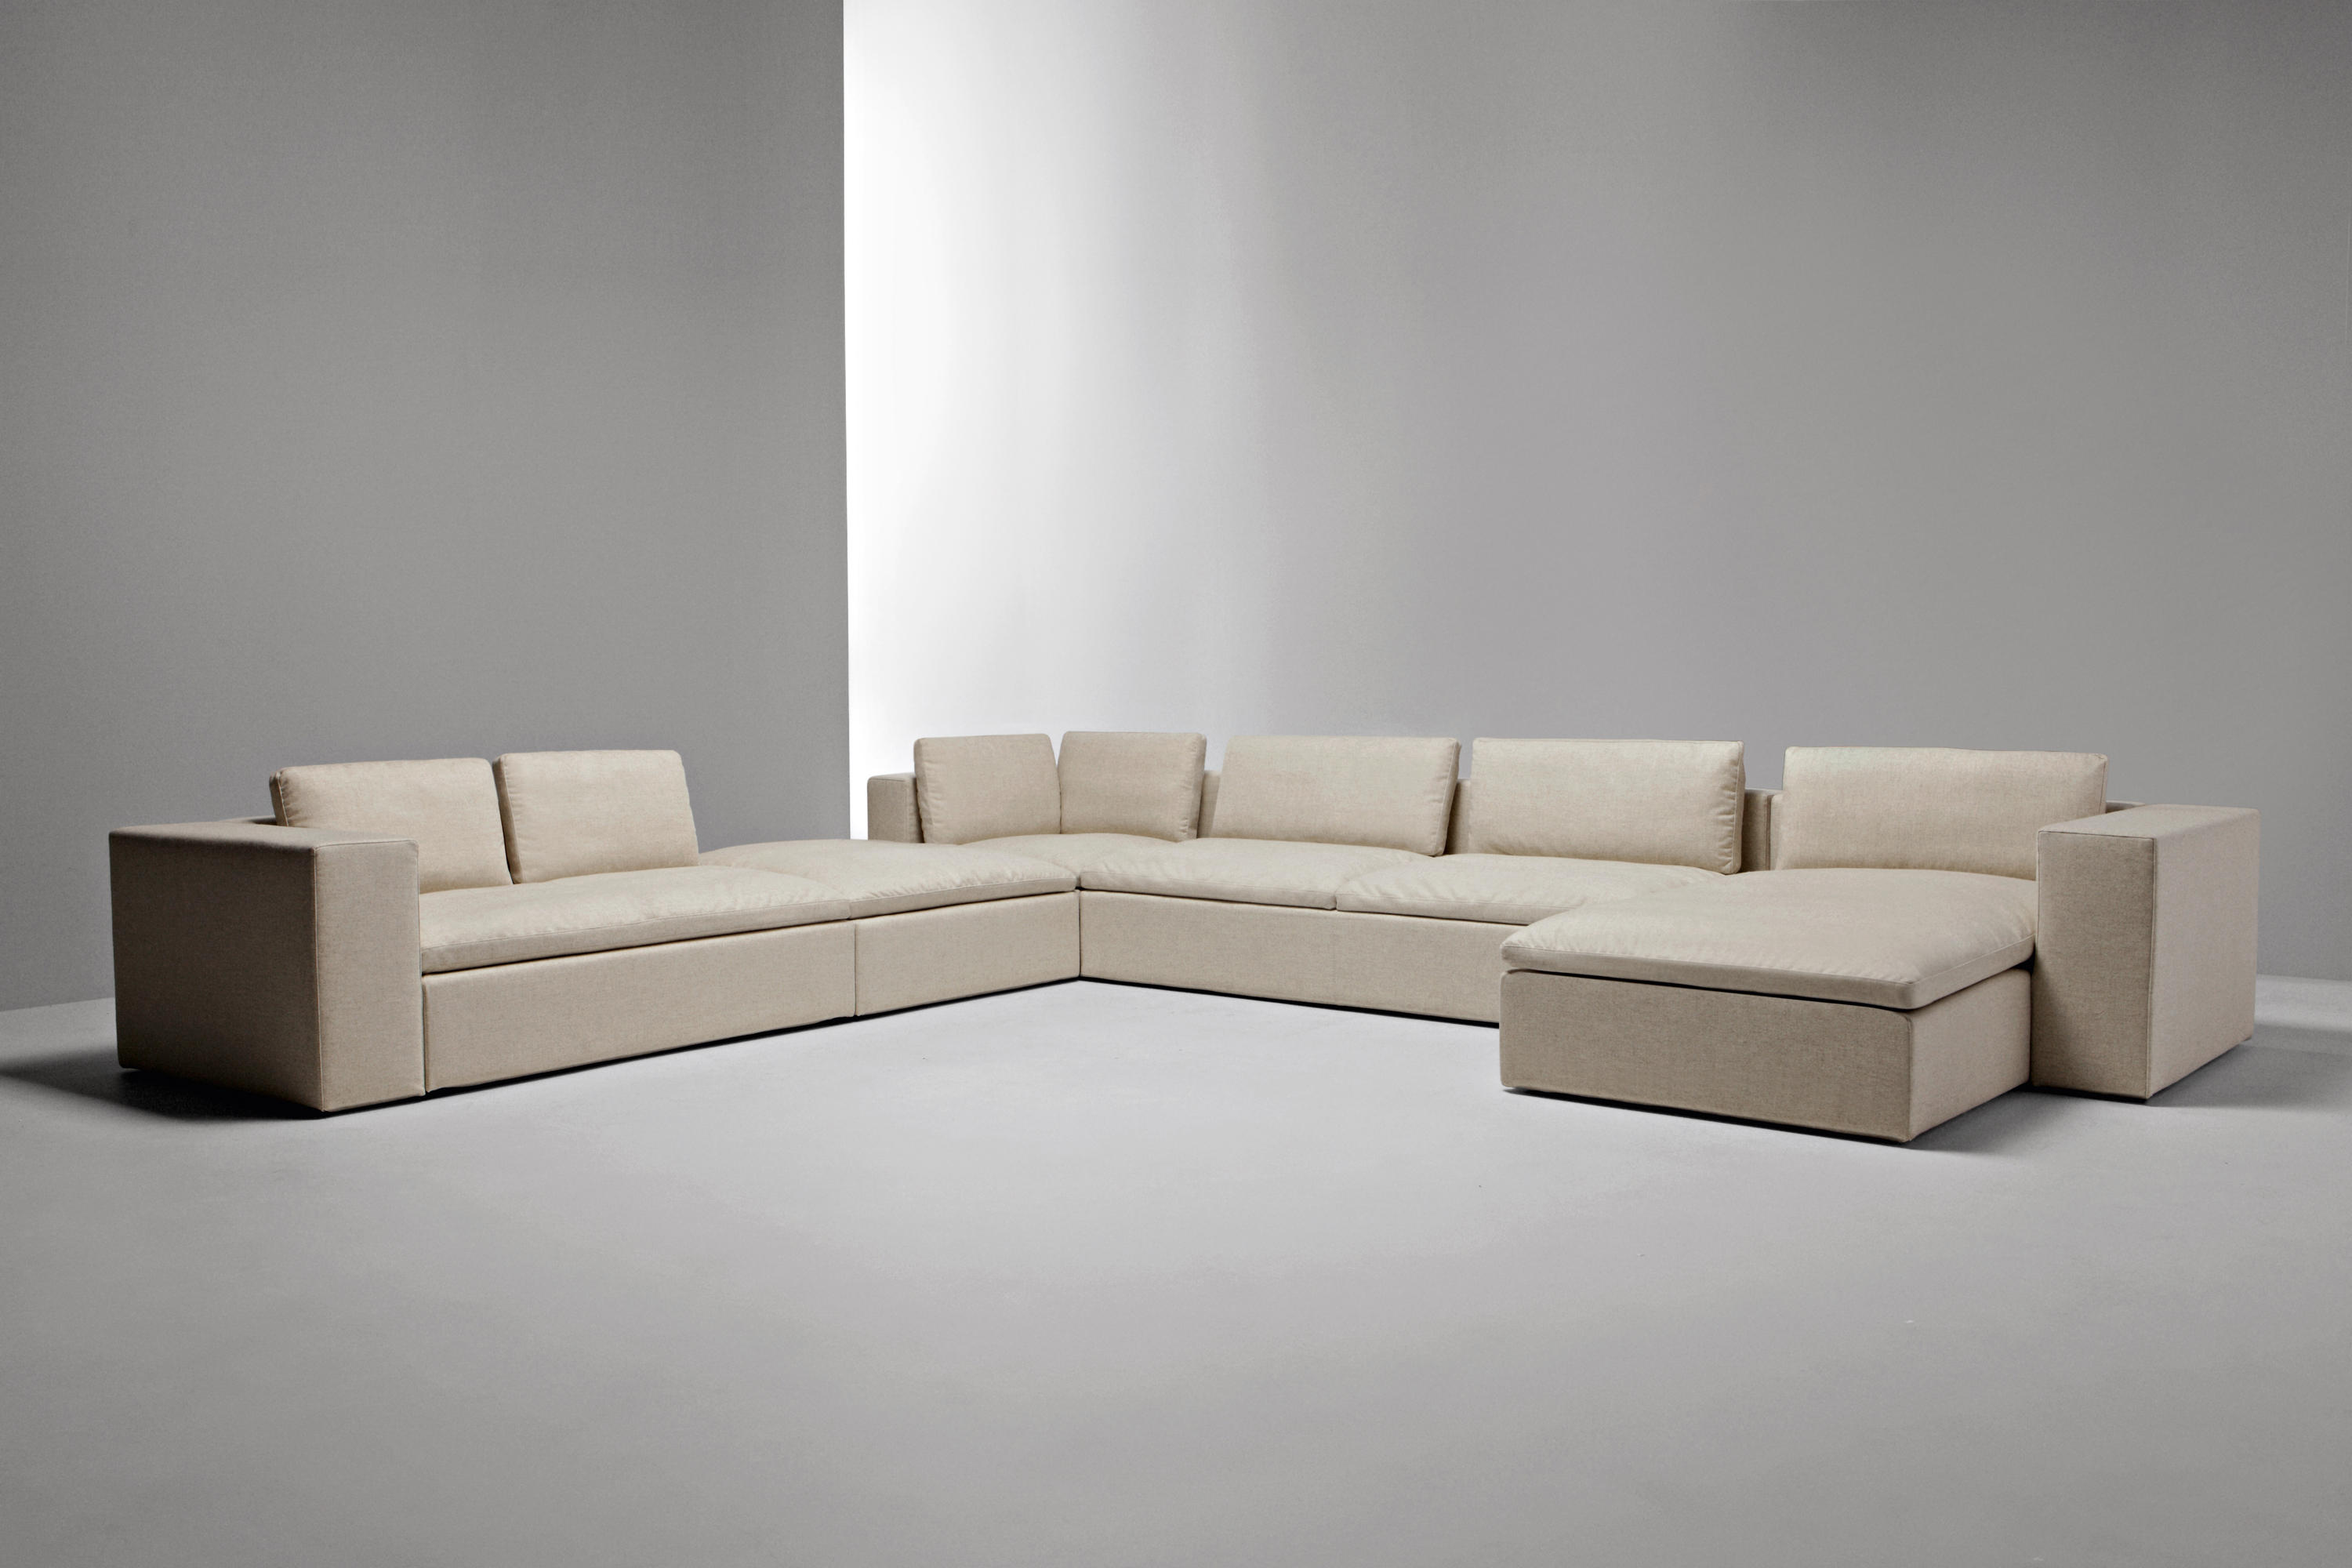 PUZZLE Sofa beds from La Cividina